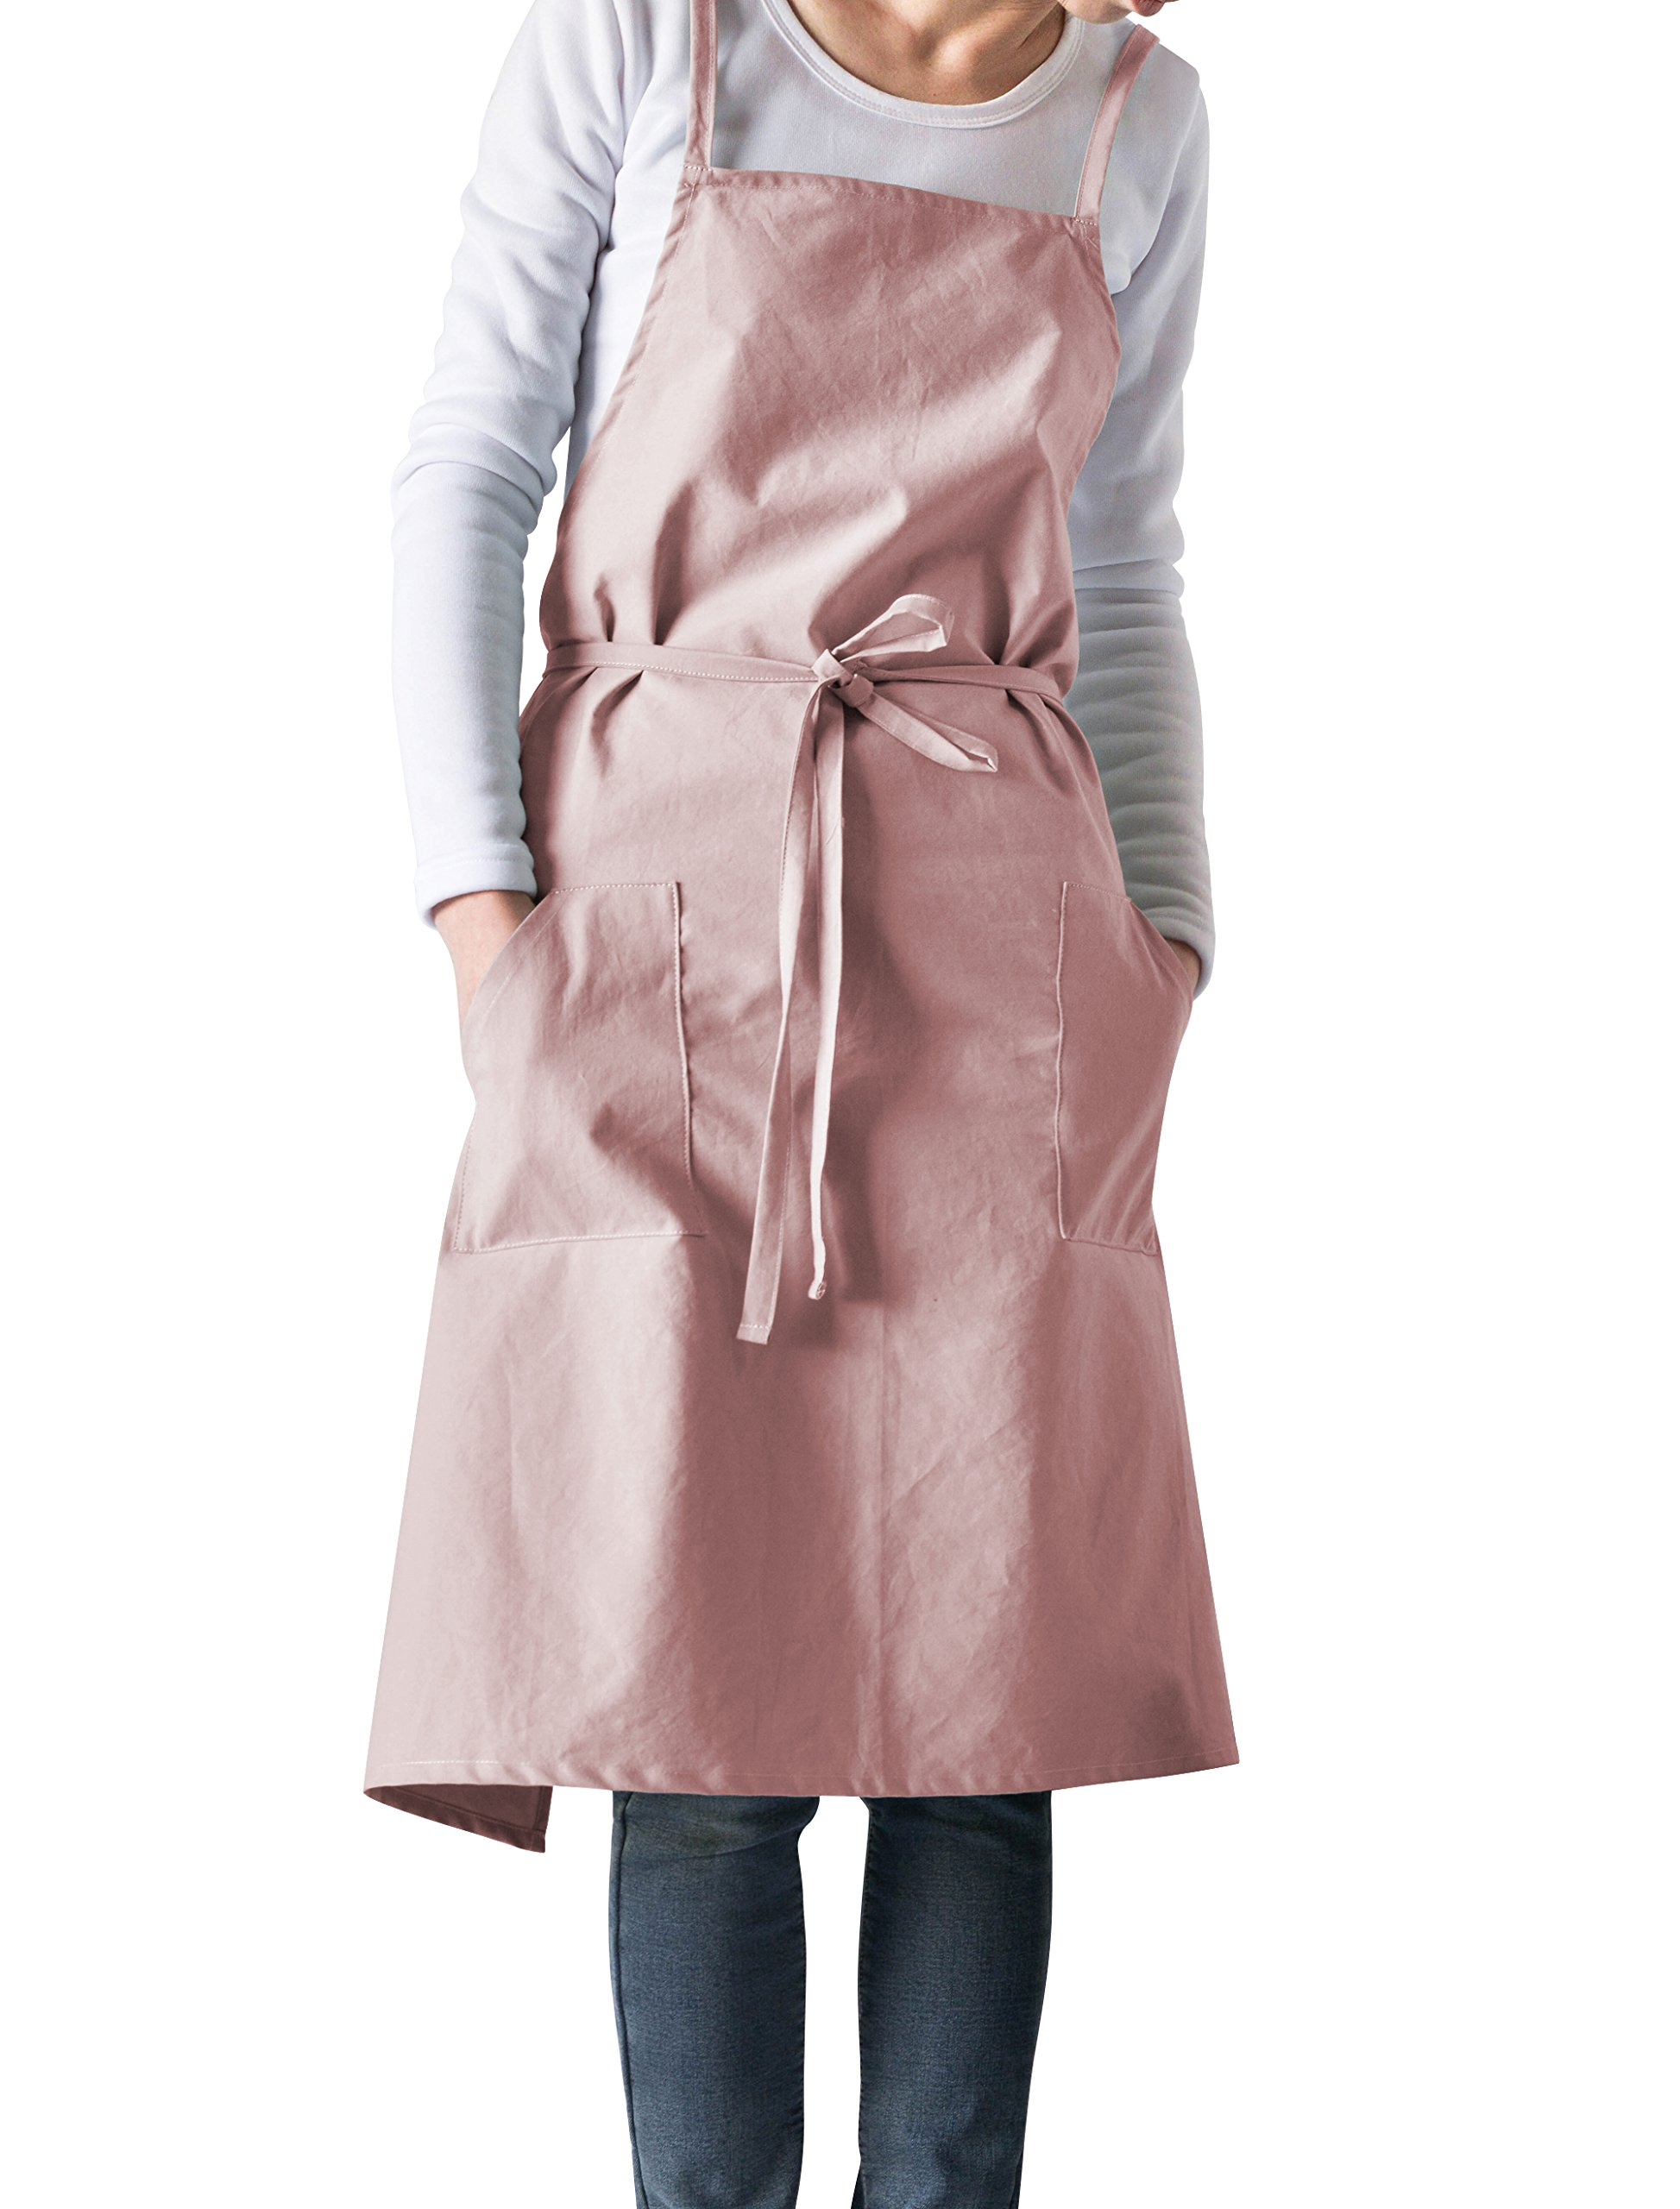 Albabara Cotton Kitchen and Cooking Apron Unisex Womens Professional Chef Bib Aprons Pinafore Cross-back straps with Pockets